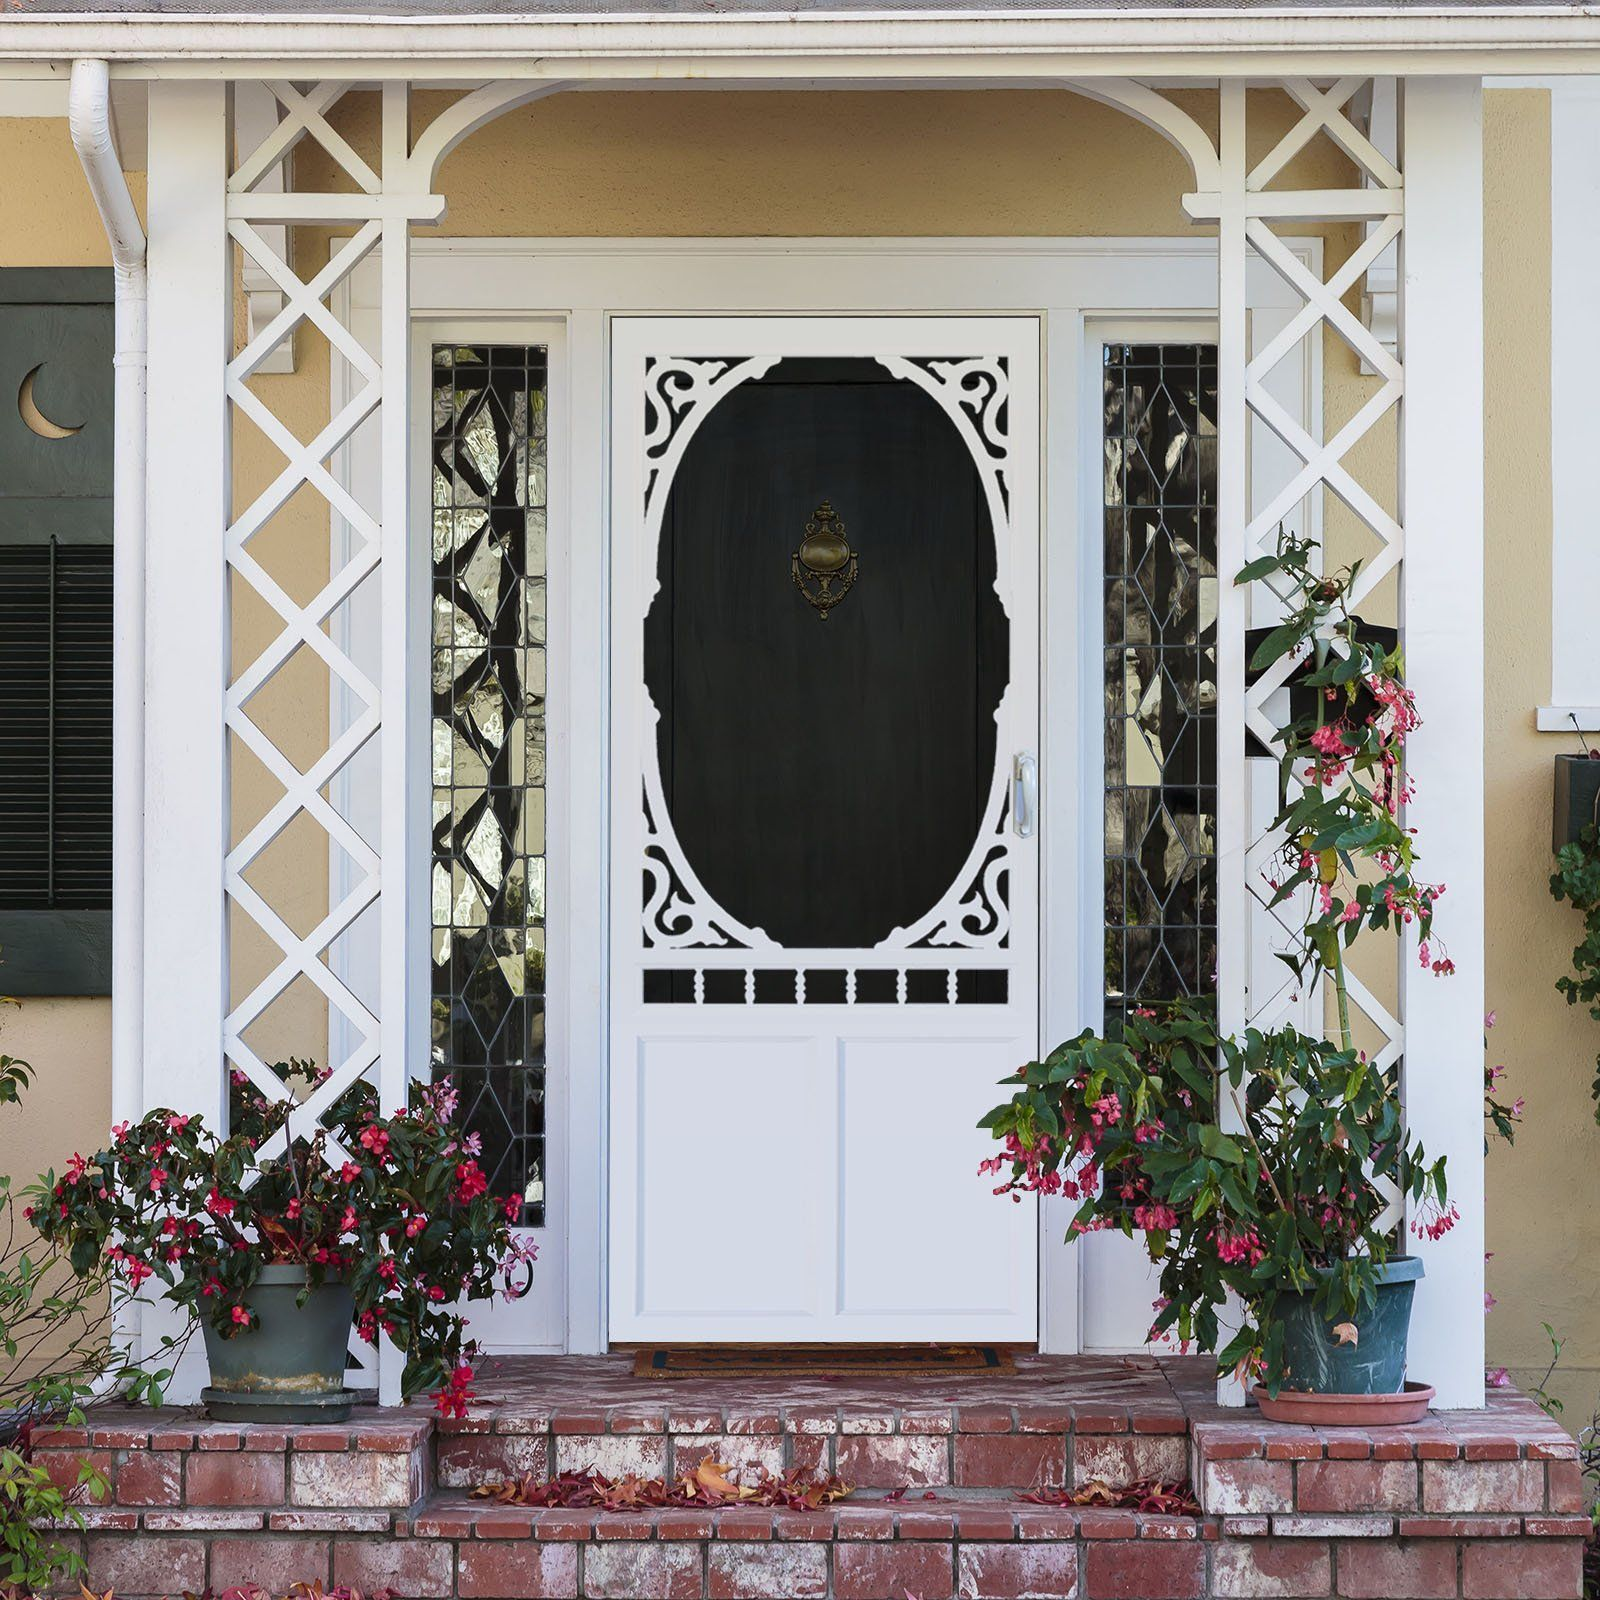 Screen Door Vinyl Brookside Vinyl Screen Doors Front Door With Screen Vintage Screen Doors